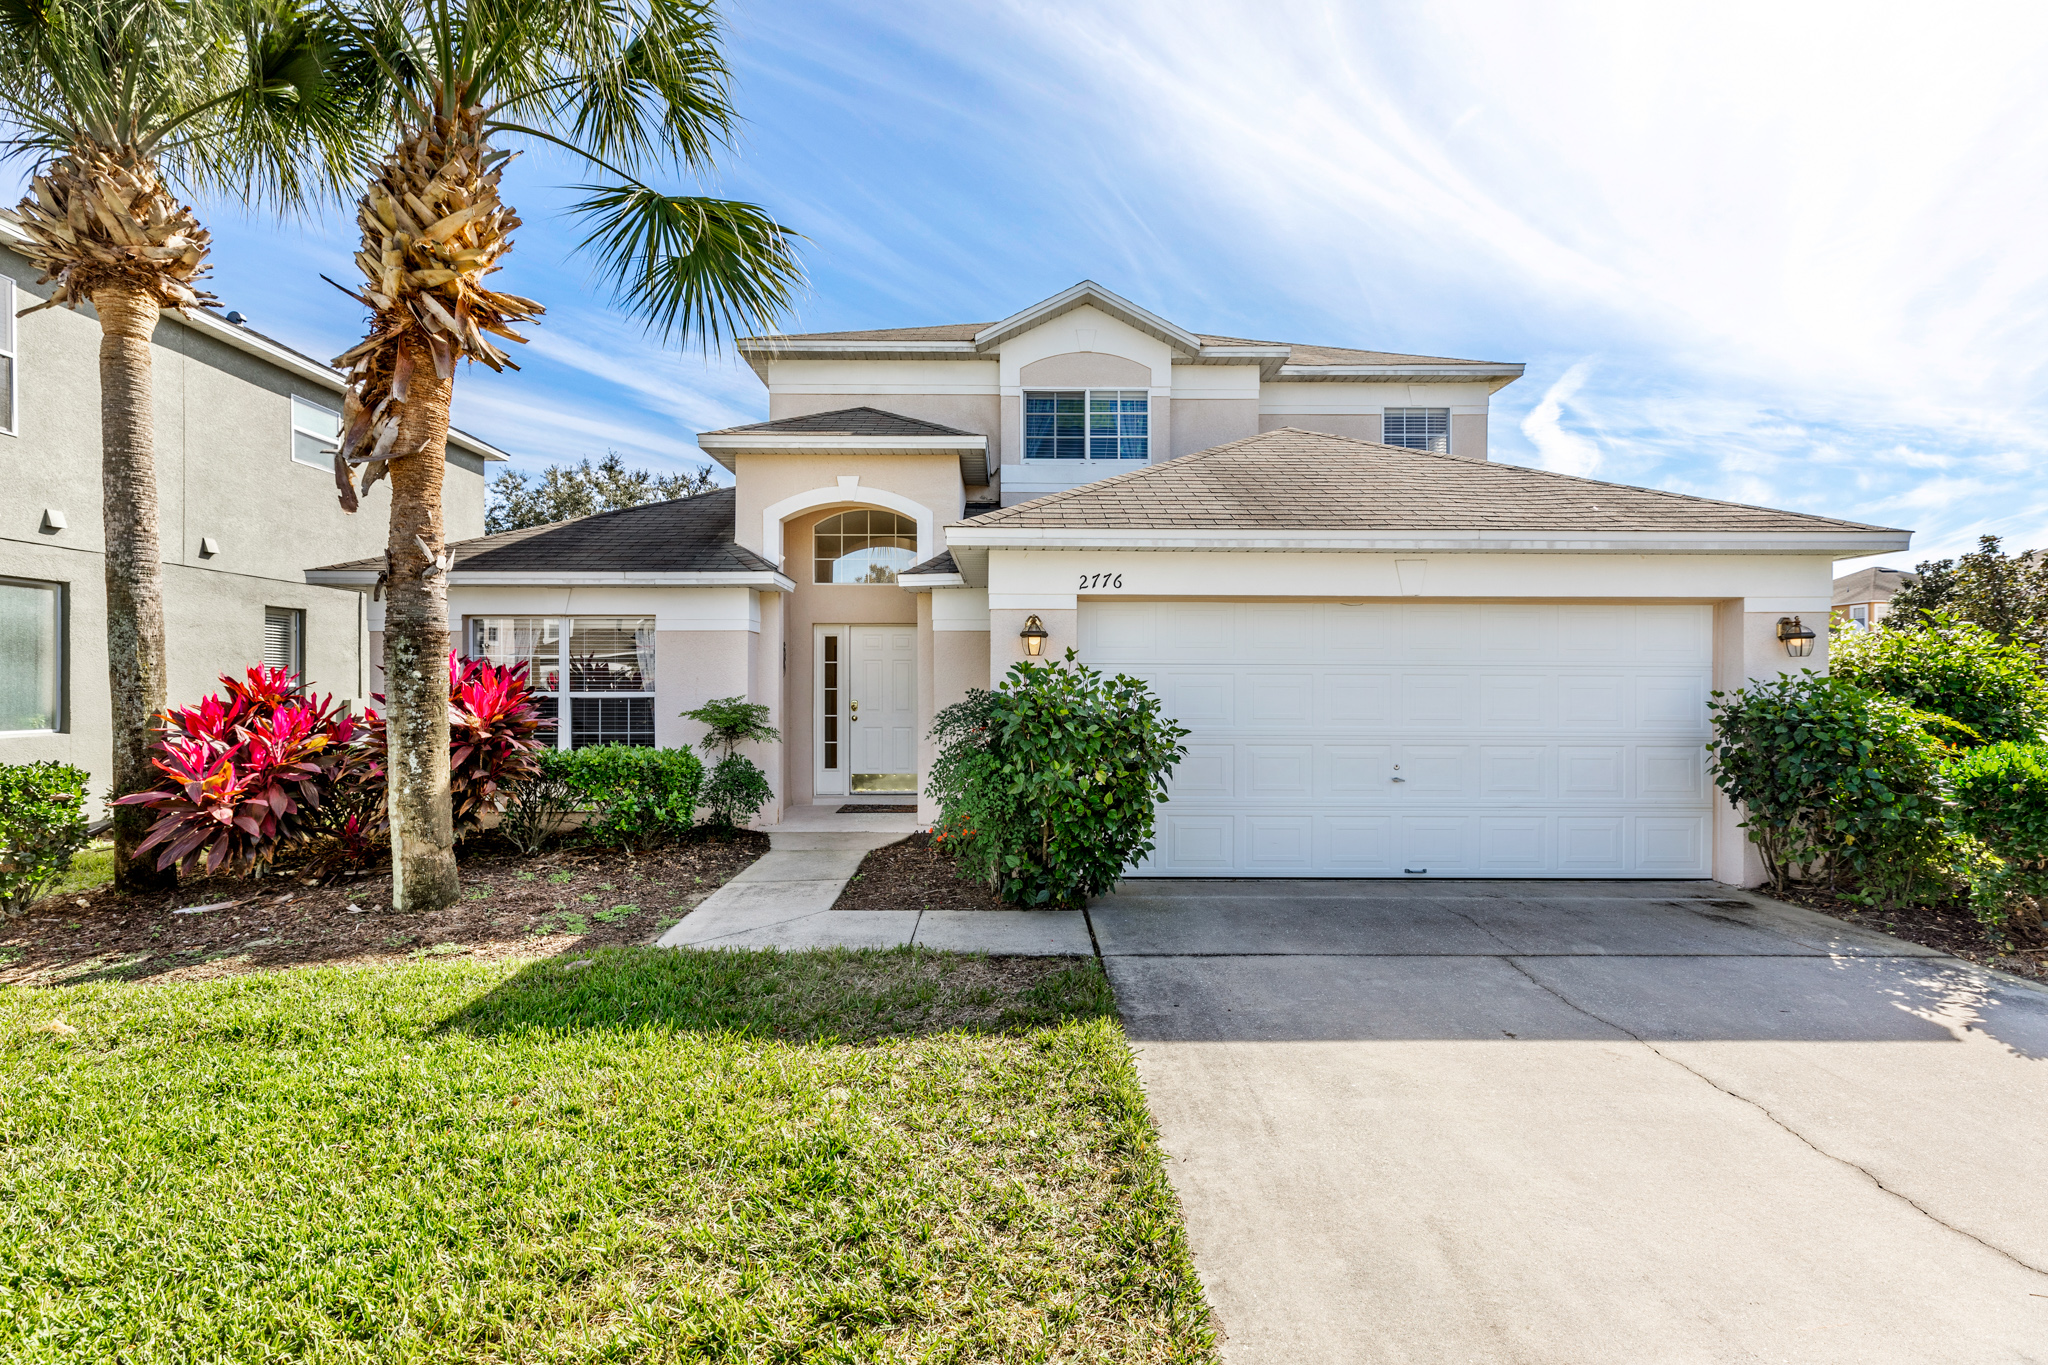 Perfect Home - Perfect Location!-128795